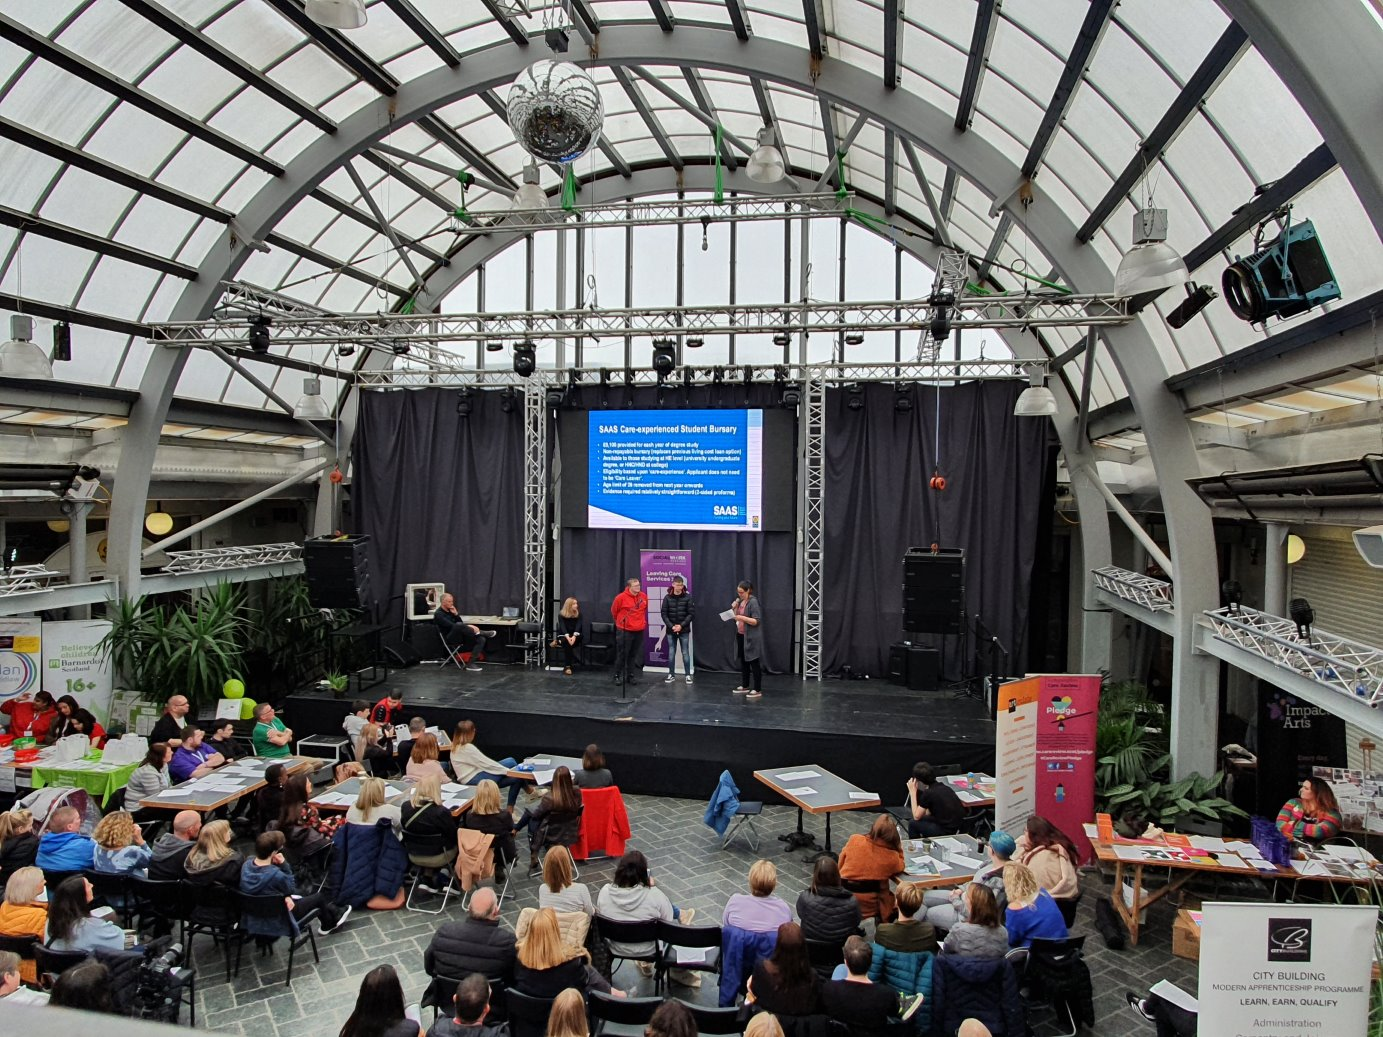 students on stage and audience